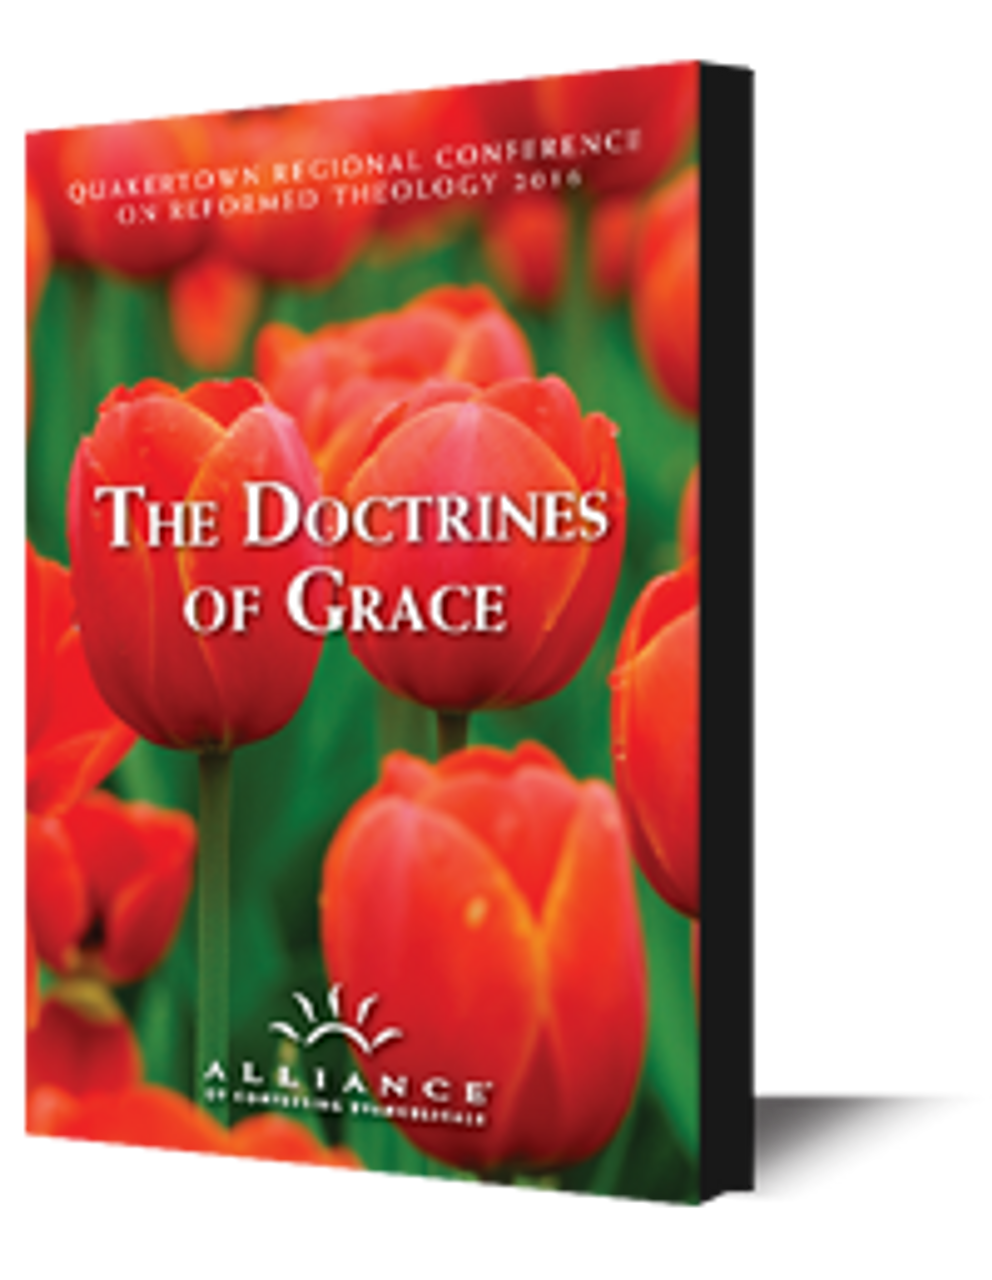 The Doctrines of Grace (QCRT16)(mp3 downloads)